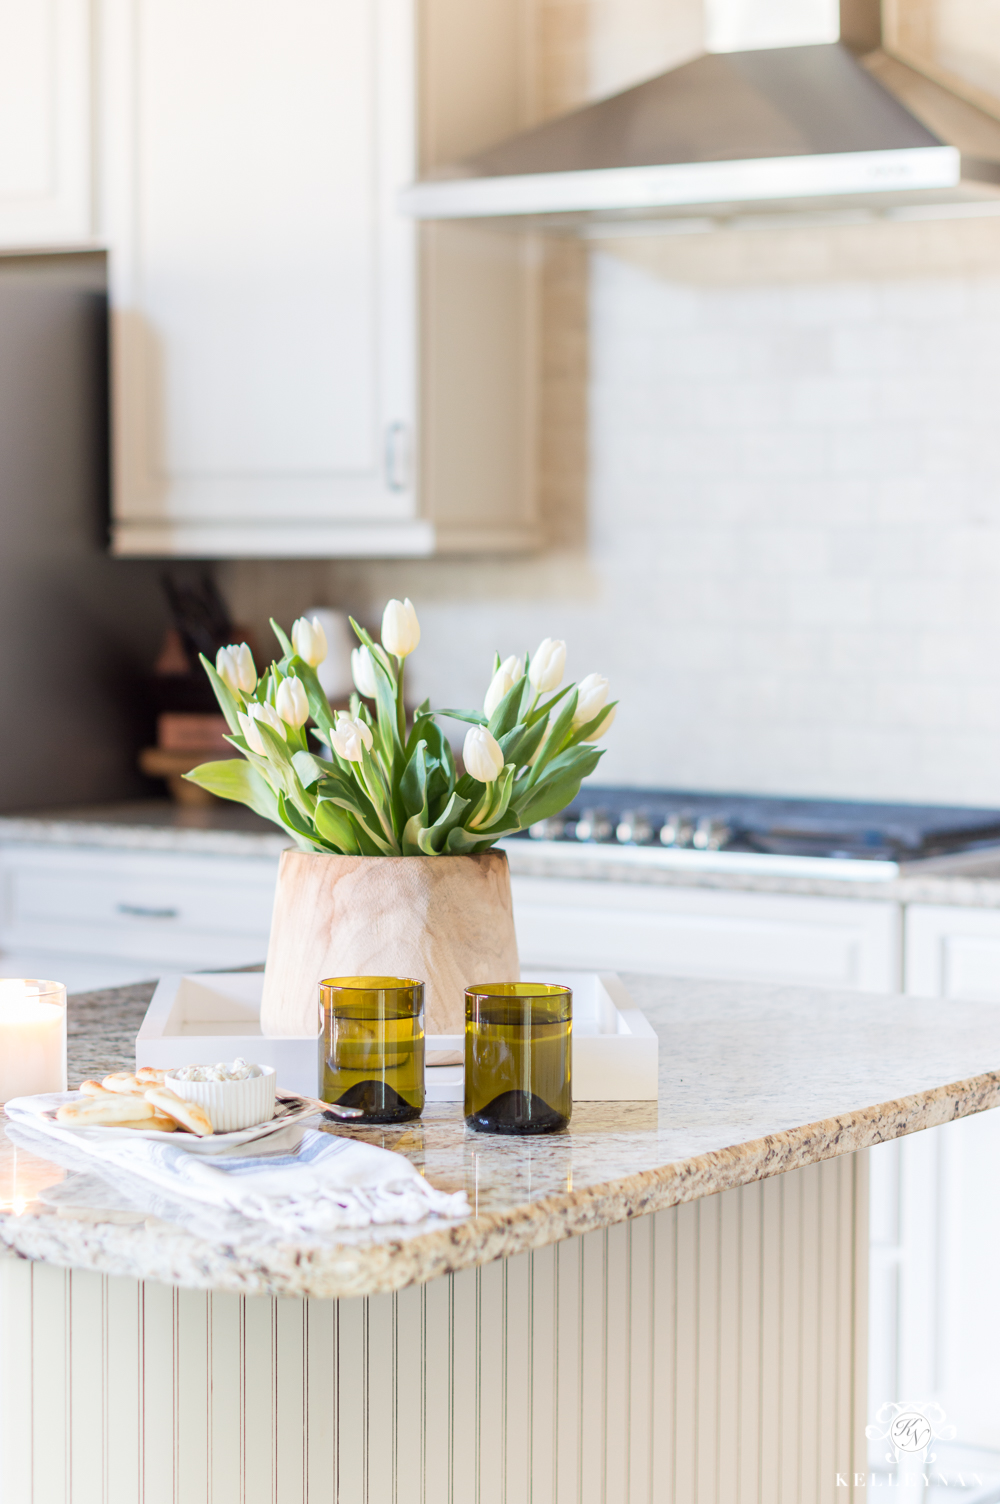 How to Style a Traditional Kitchen Island for Spring with Tulips